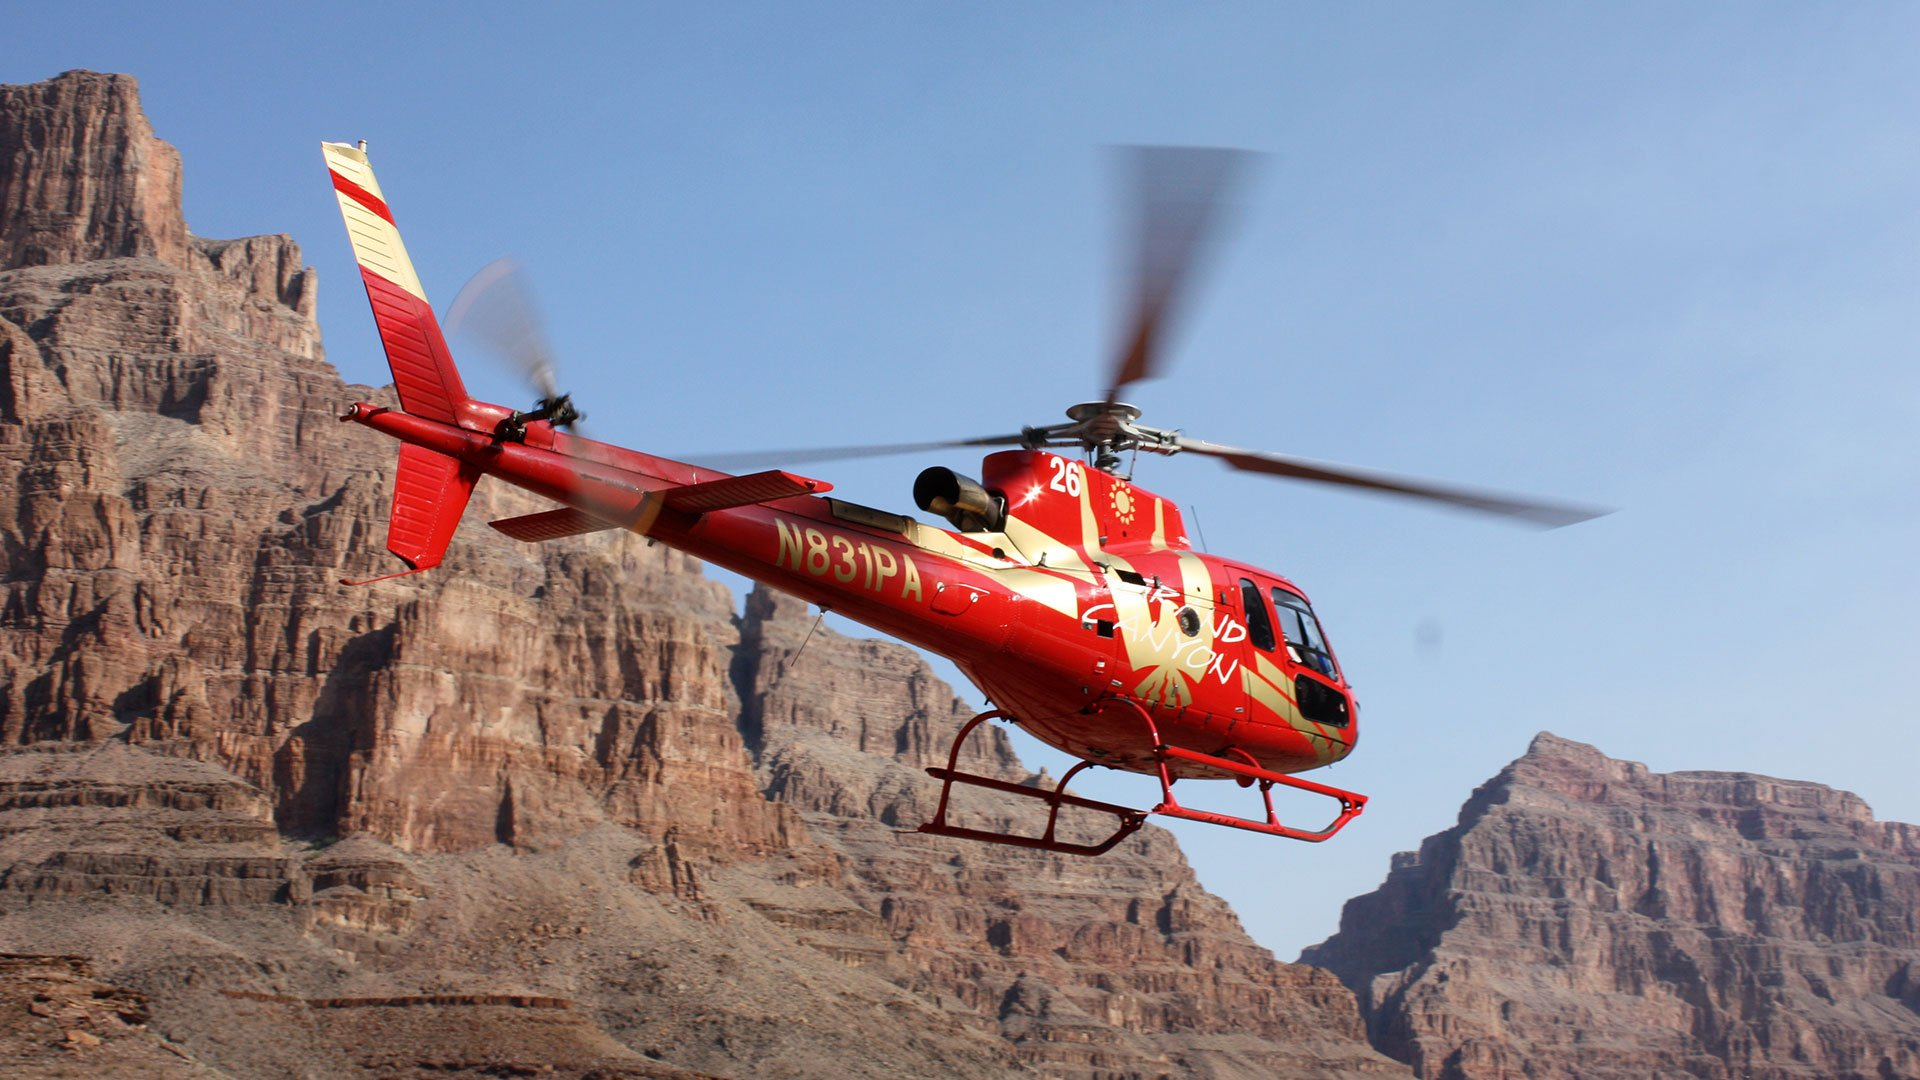 A red helicopter flies through the Grand Canyon West.